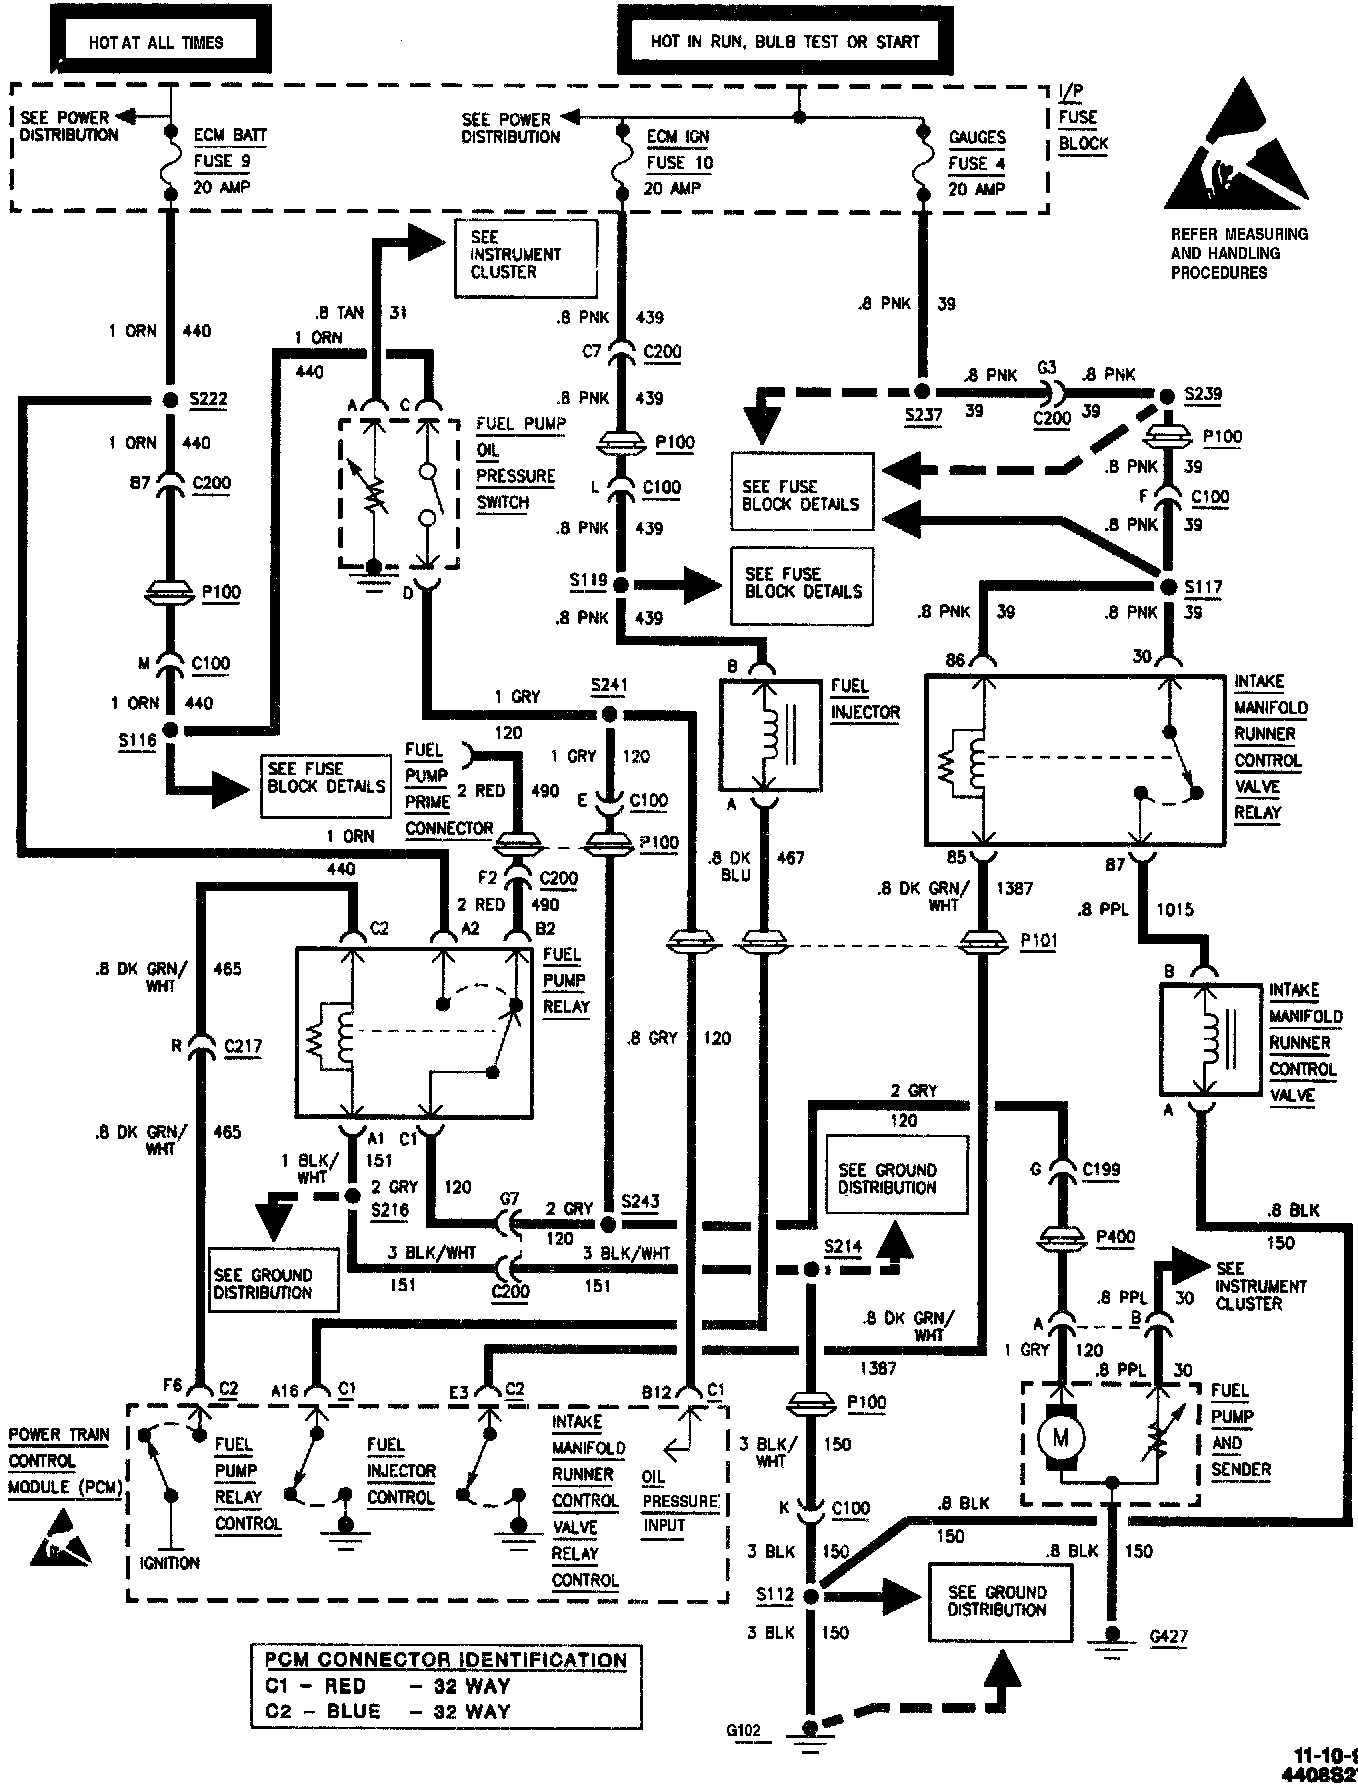 2006 F150 Fuse Box On Truck Electrical Wiring Diagram 06 Located 2005 Chevy Trailblazer Fuel Pump Best Site Location Layout